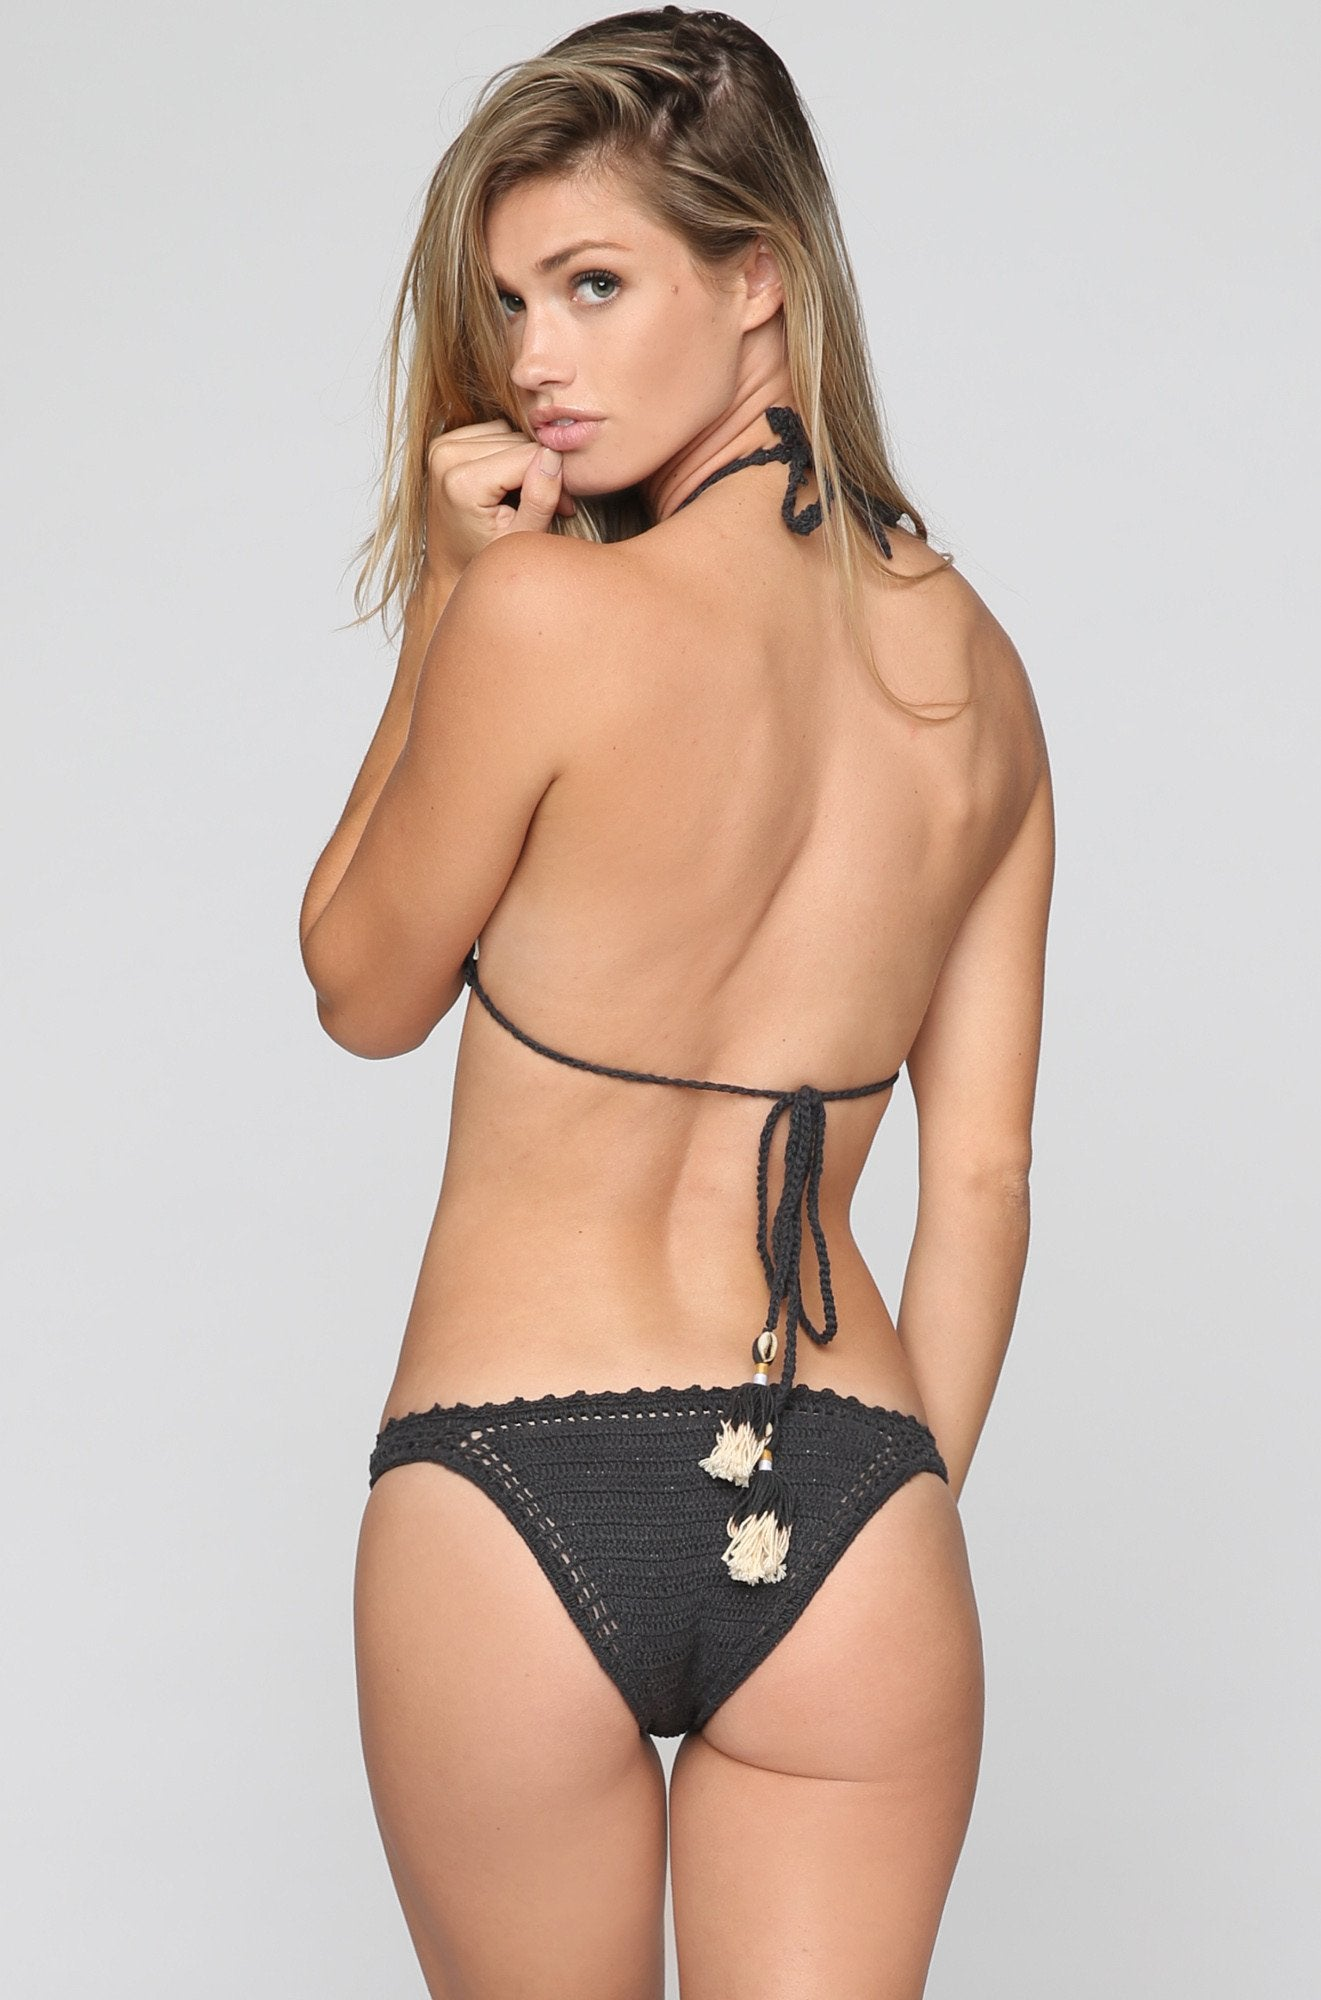 Crochet Cheeky Bikini Bottom in Charcoal.